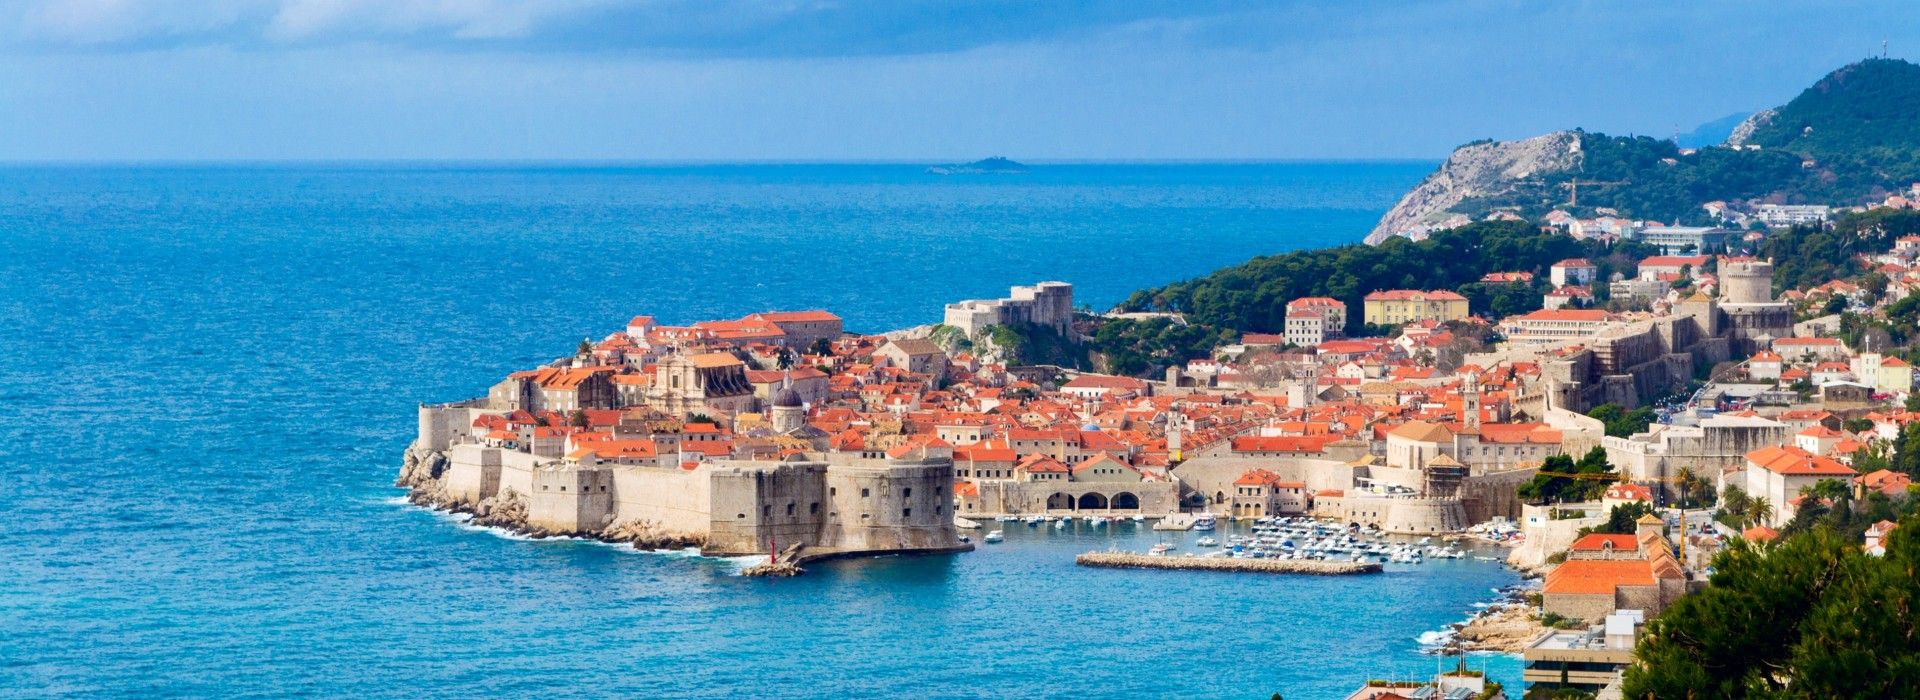 Beach, romance, getaways and relaxation Tours in Korcula Island